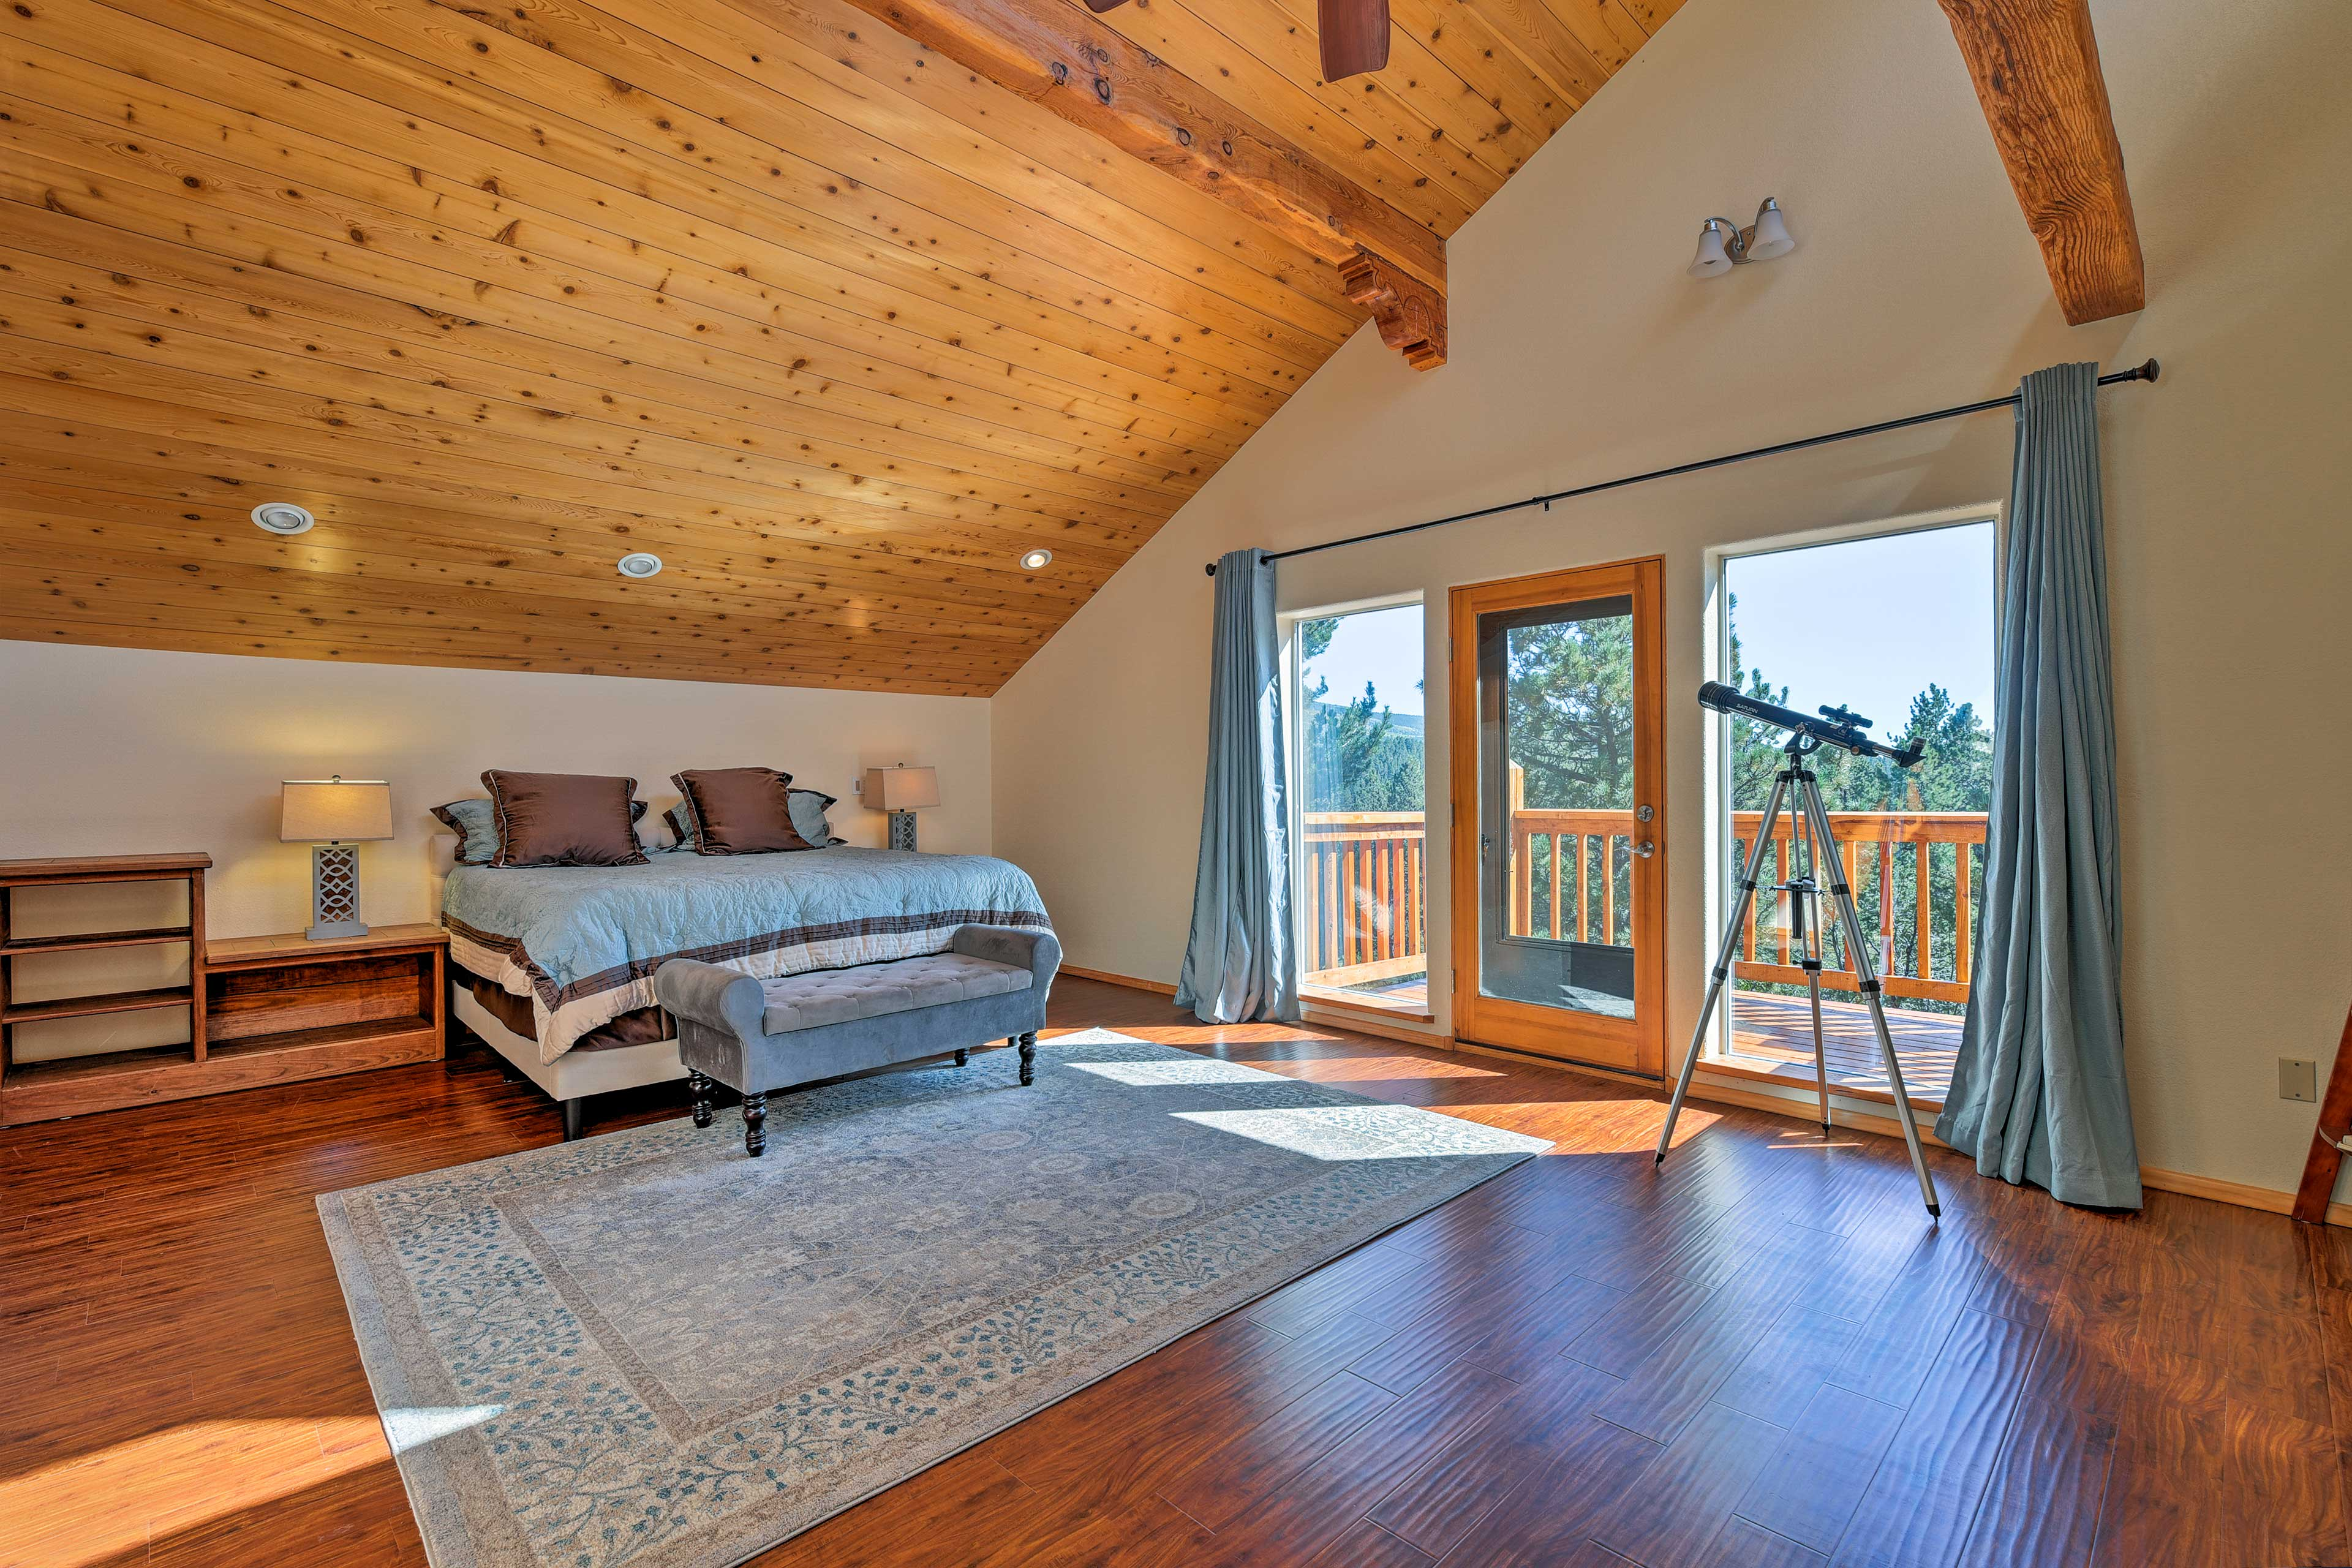 Upstairs, the master suite features hardwood floors and soaring ceilings.